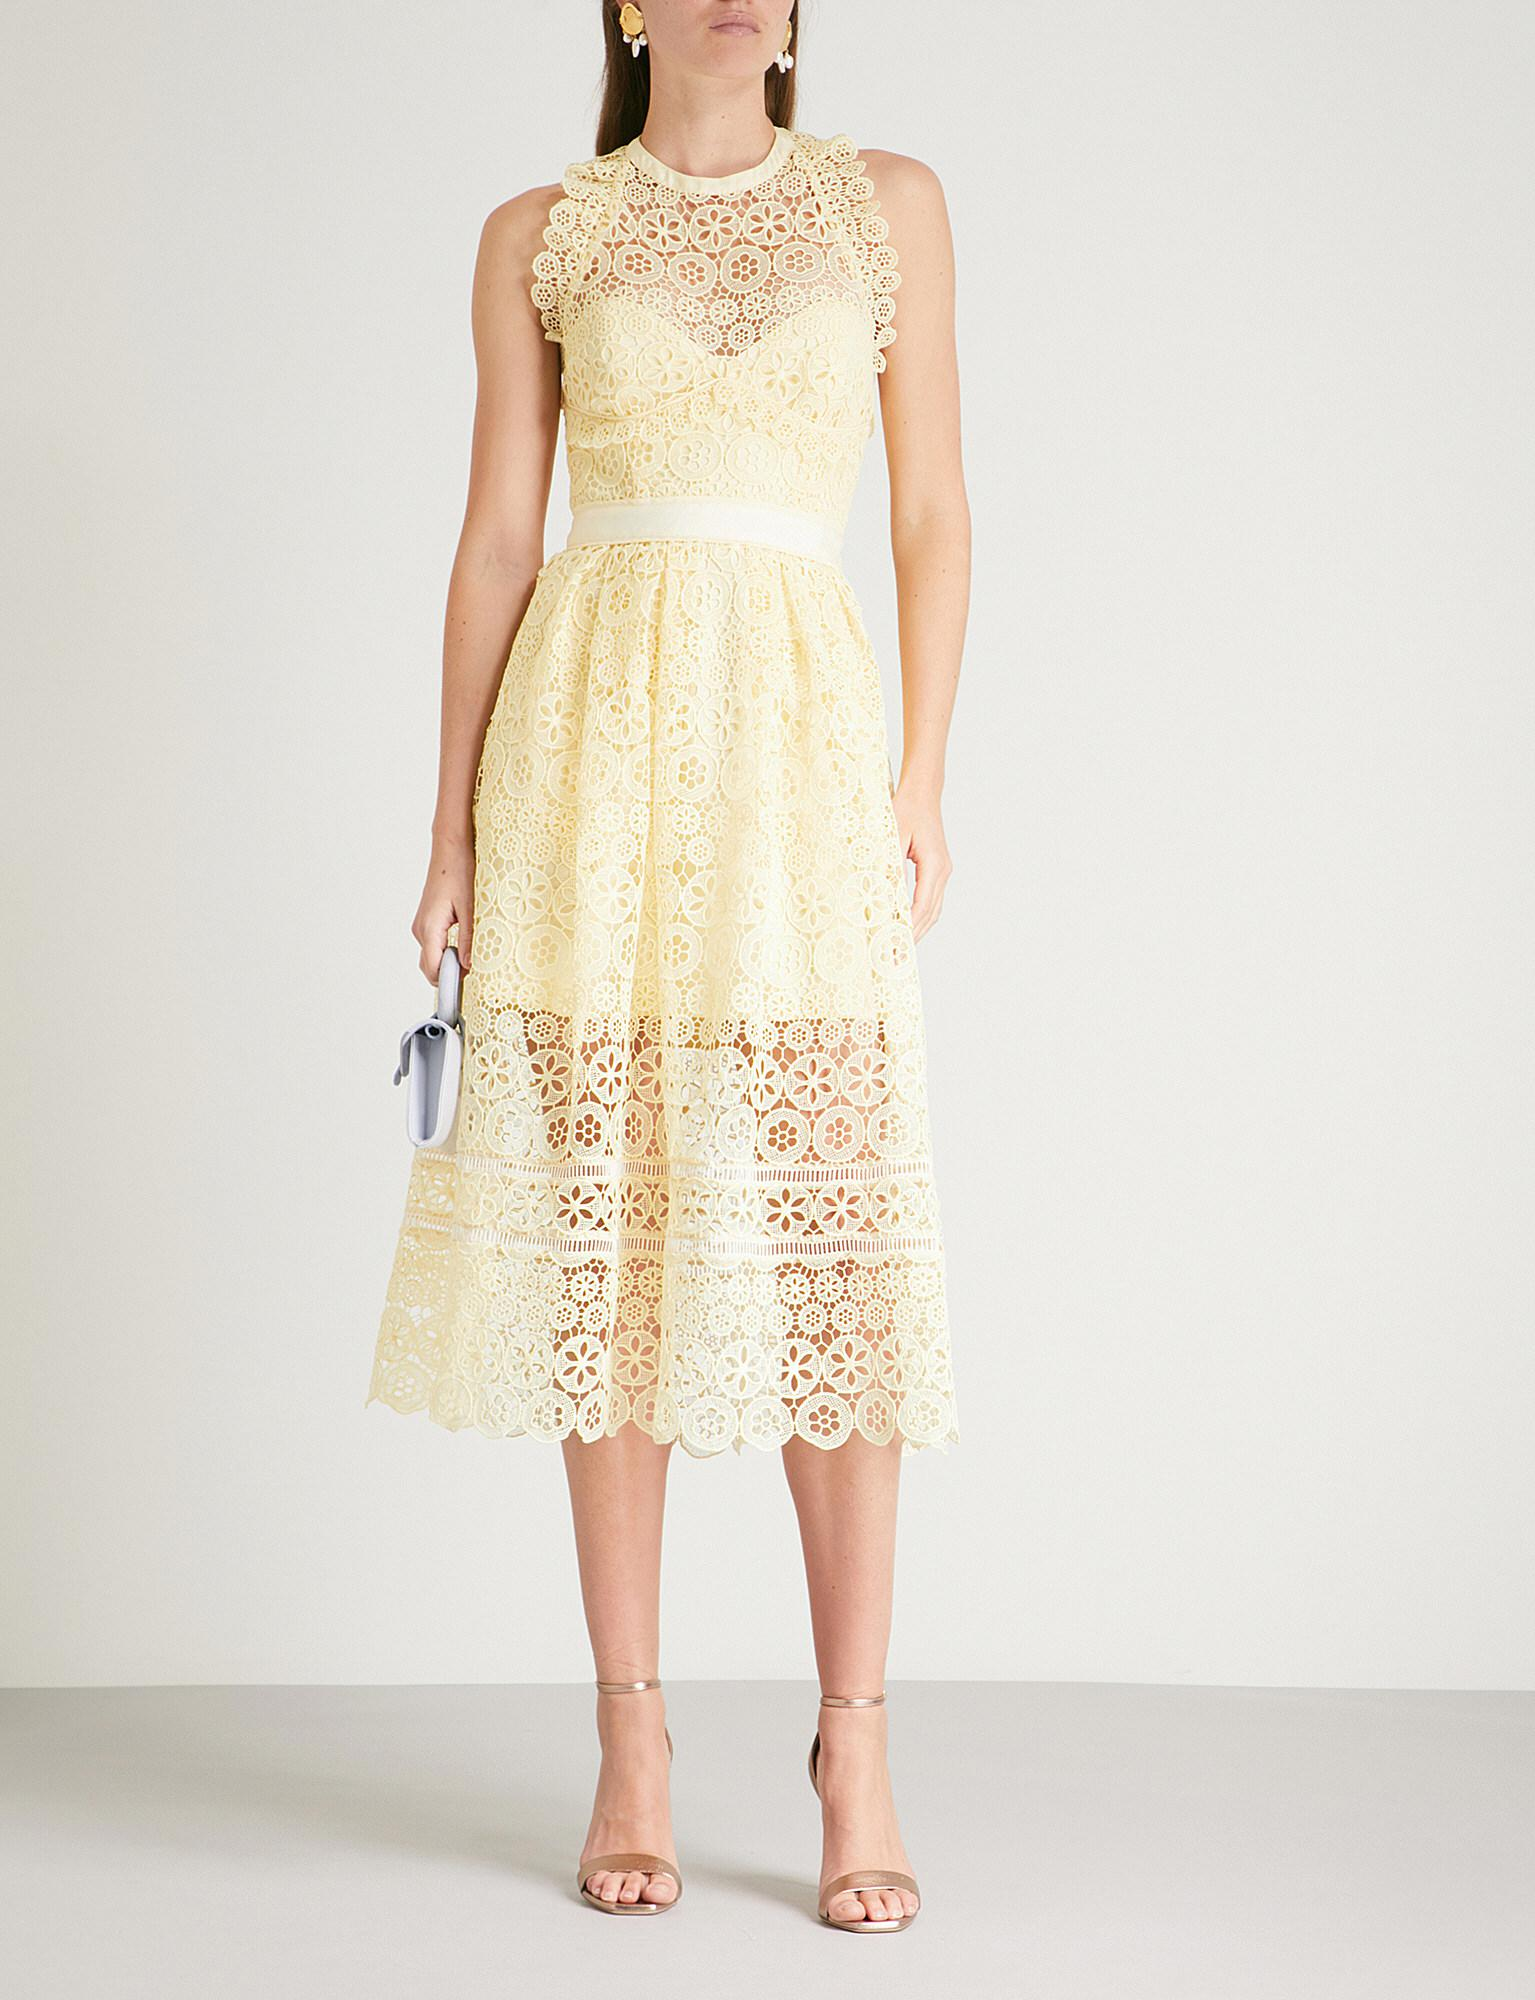 1794a06524182 Self-Portrait Circle Floral Lace Midi Dress in Yellow - Lyst